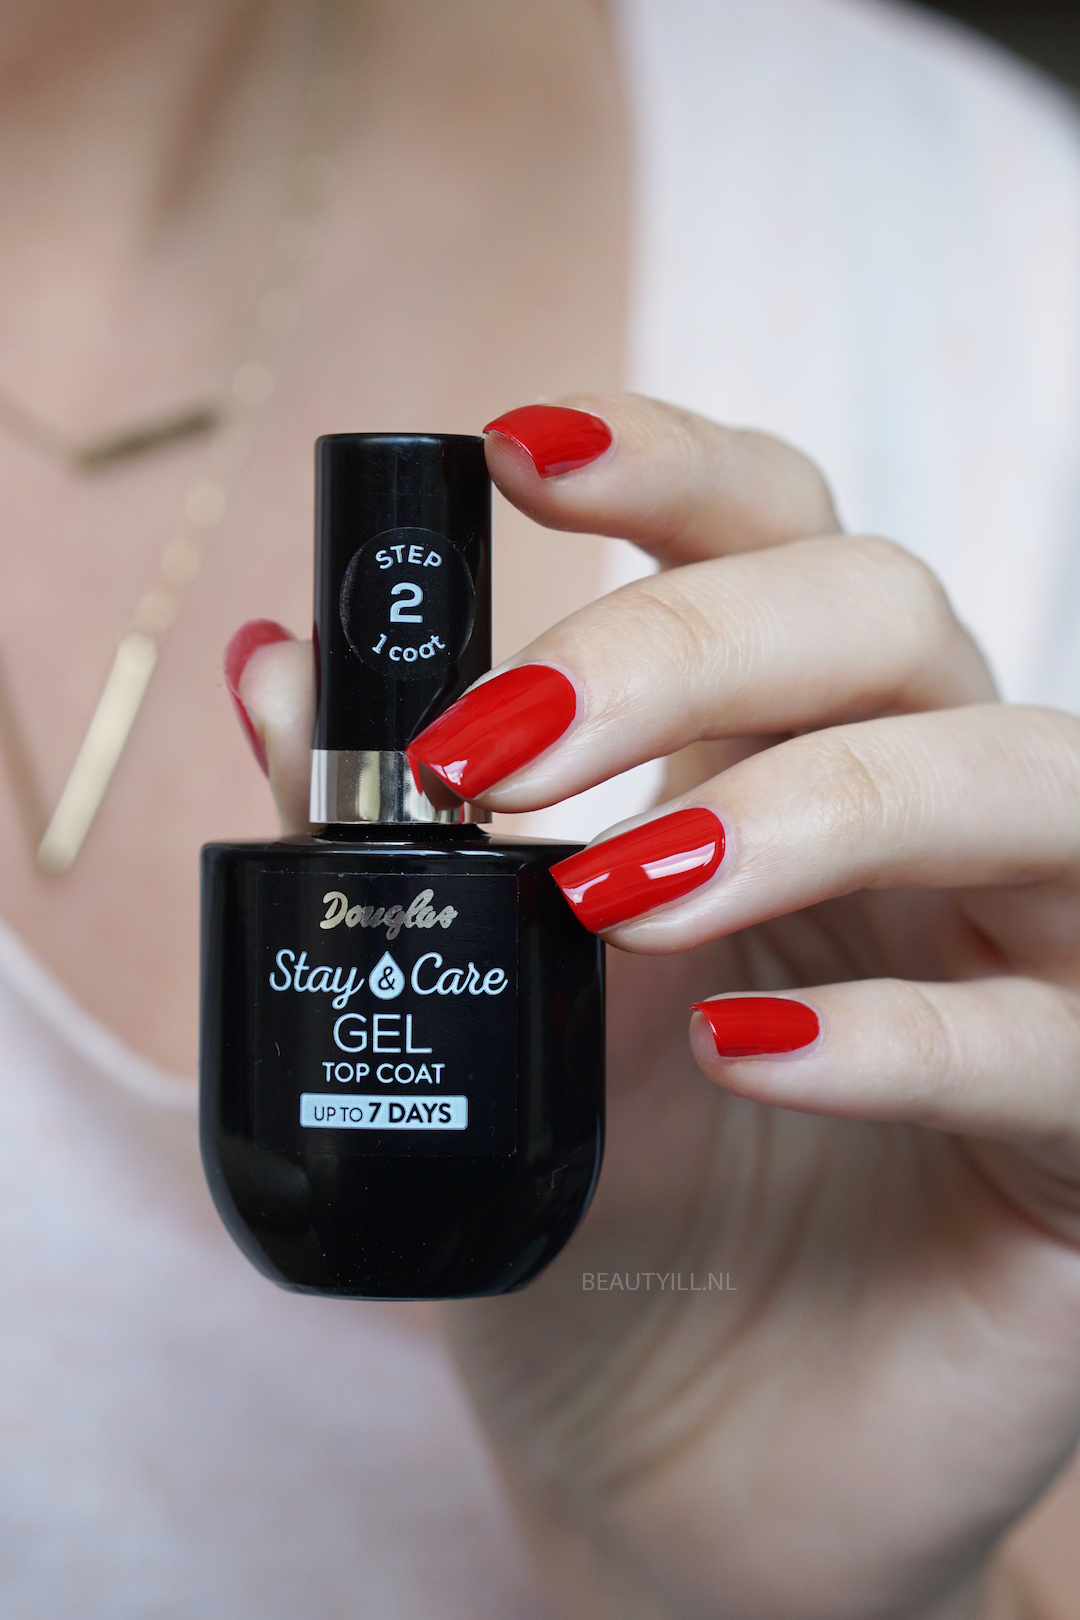 Douglas Stay & Care Gel nagellak